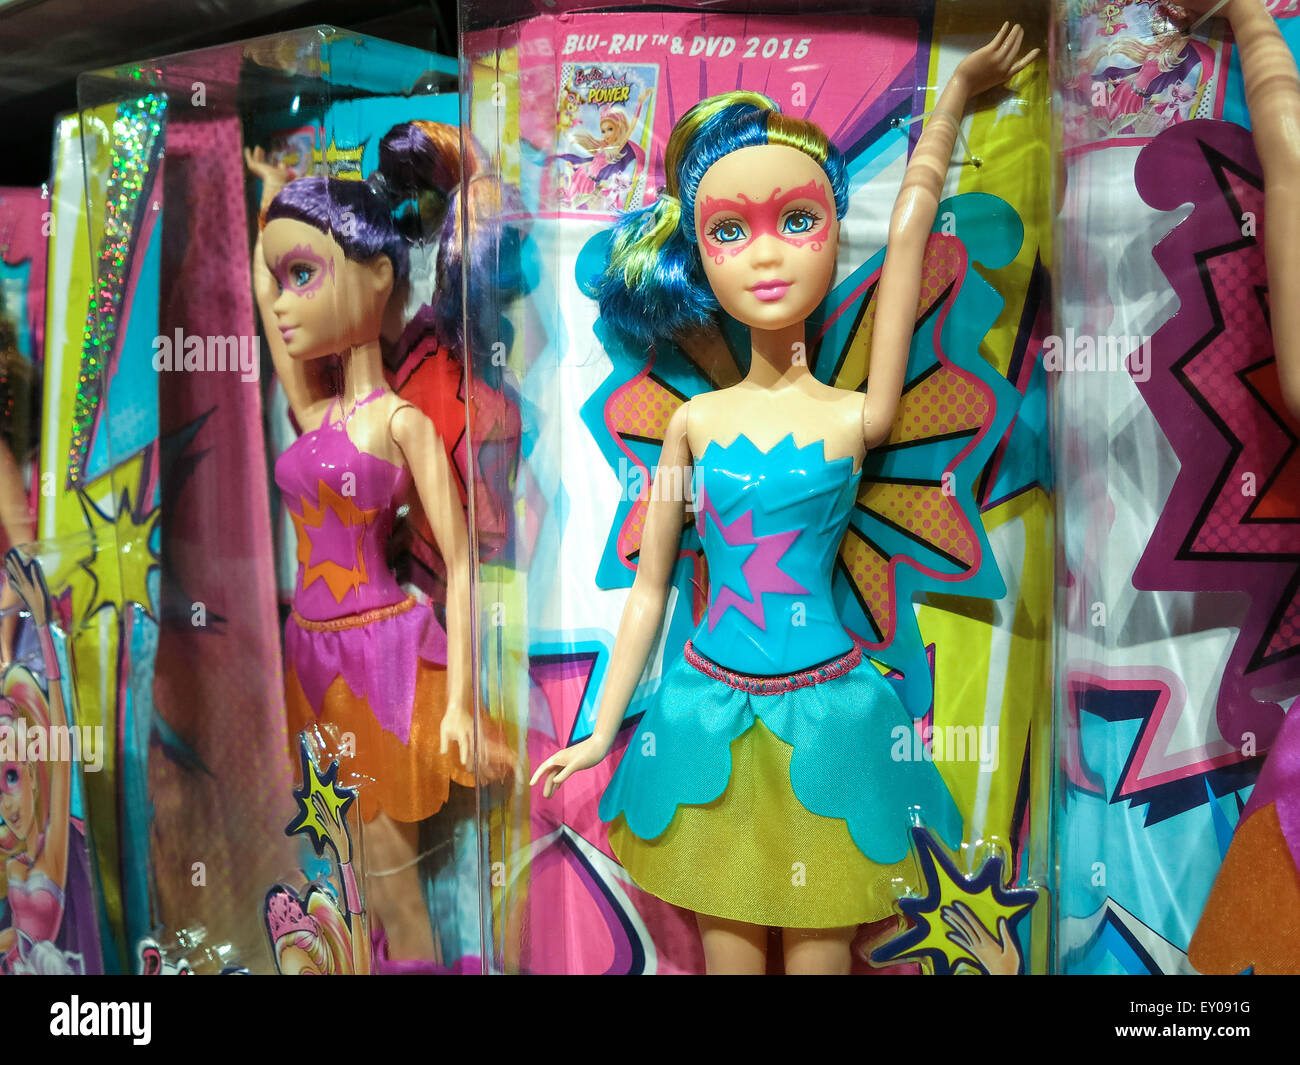 Barbie Puppen Toys R Us Store Interieur Times Square New York